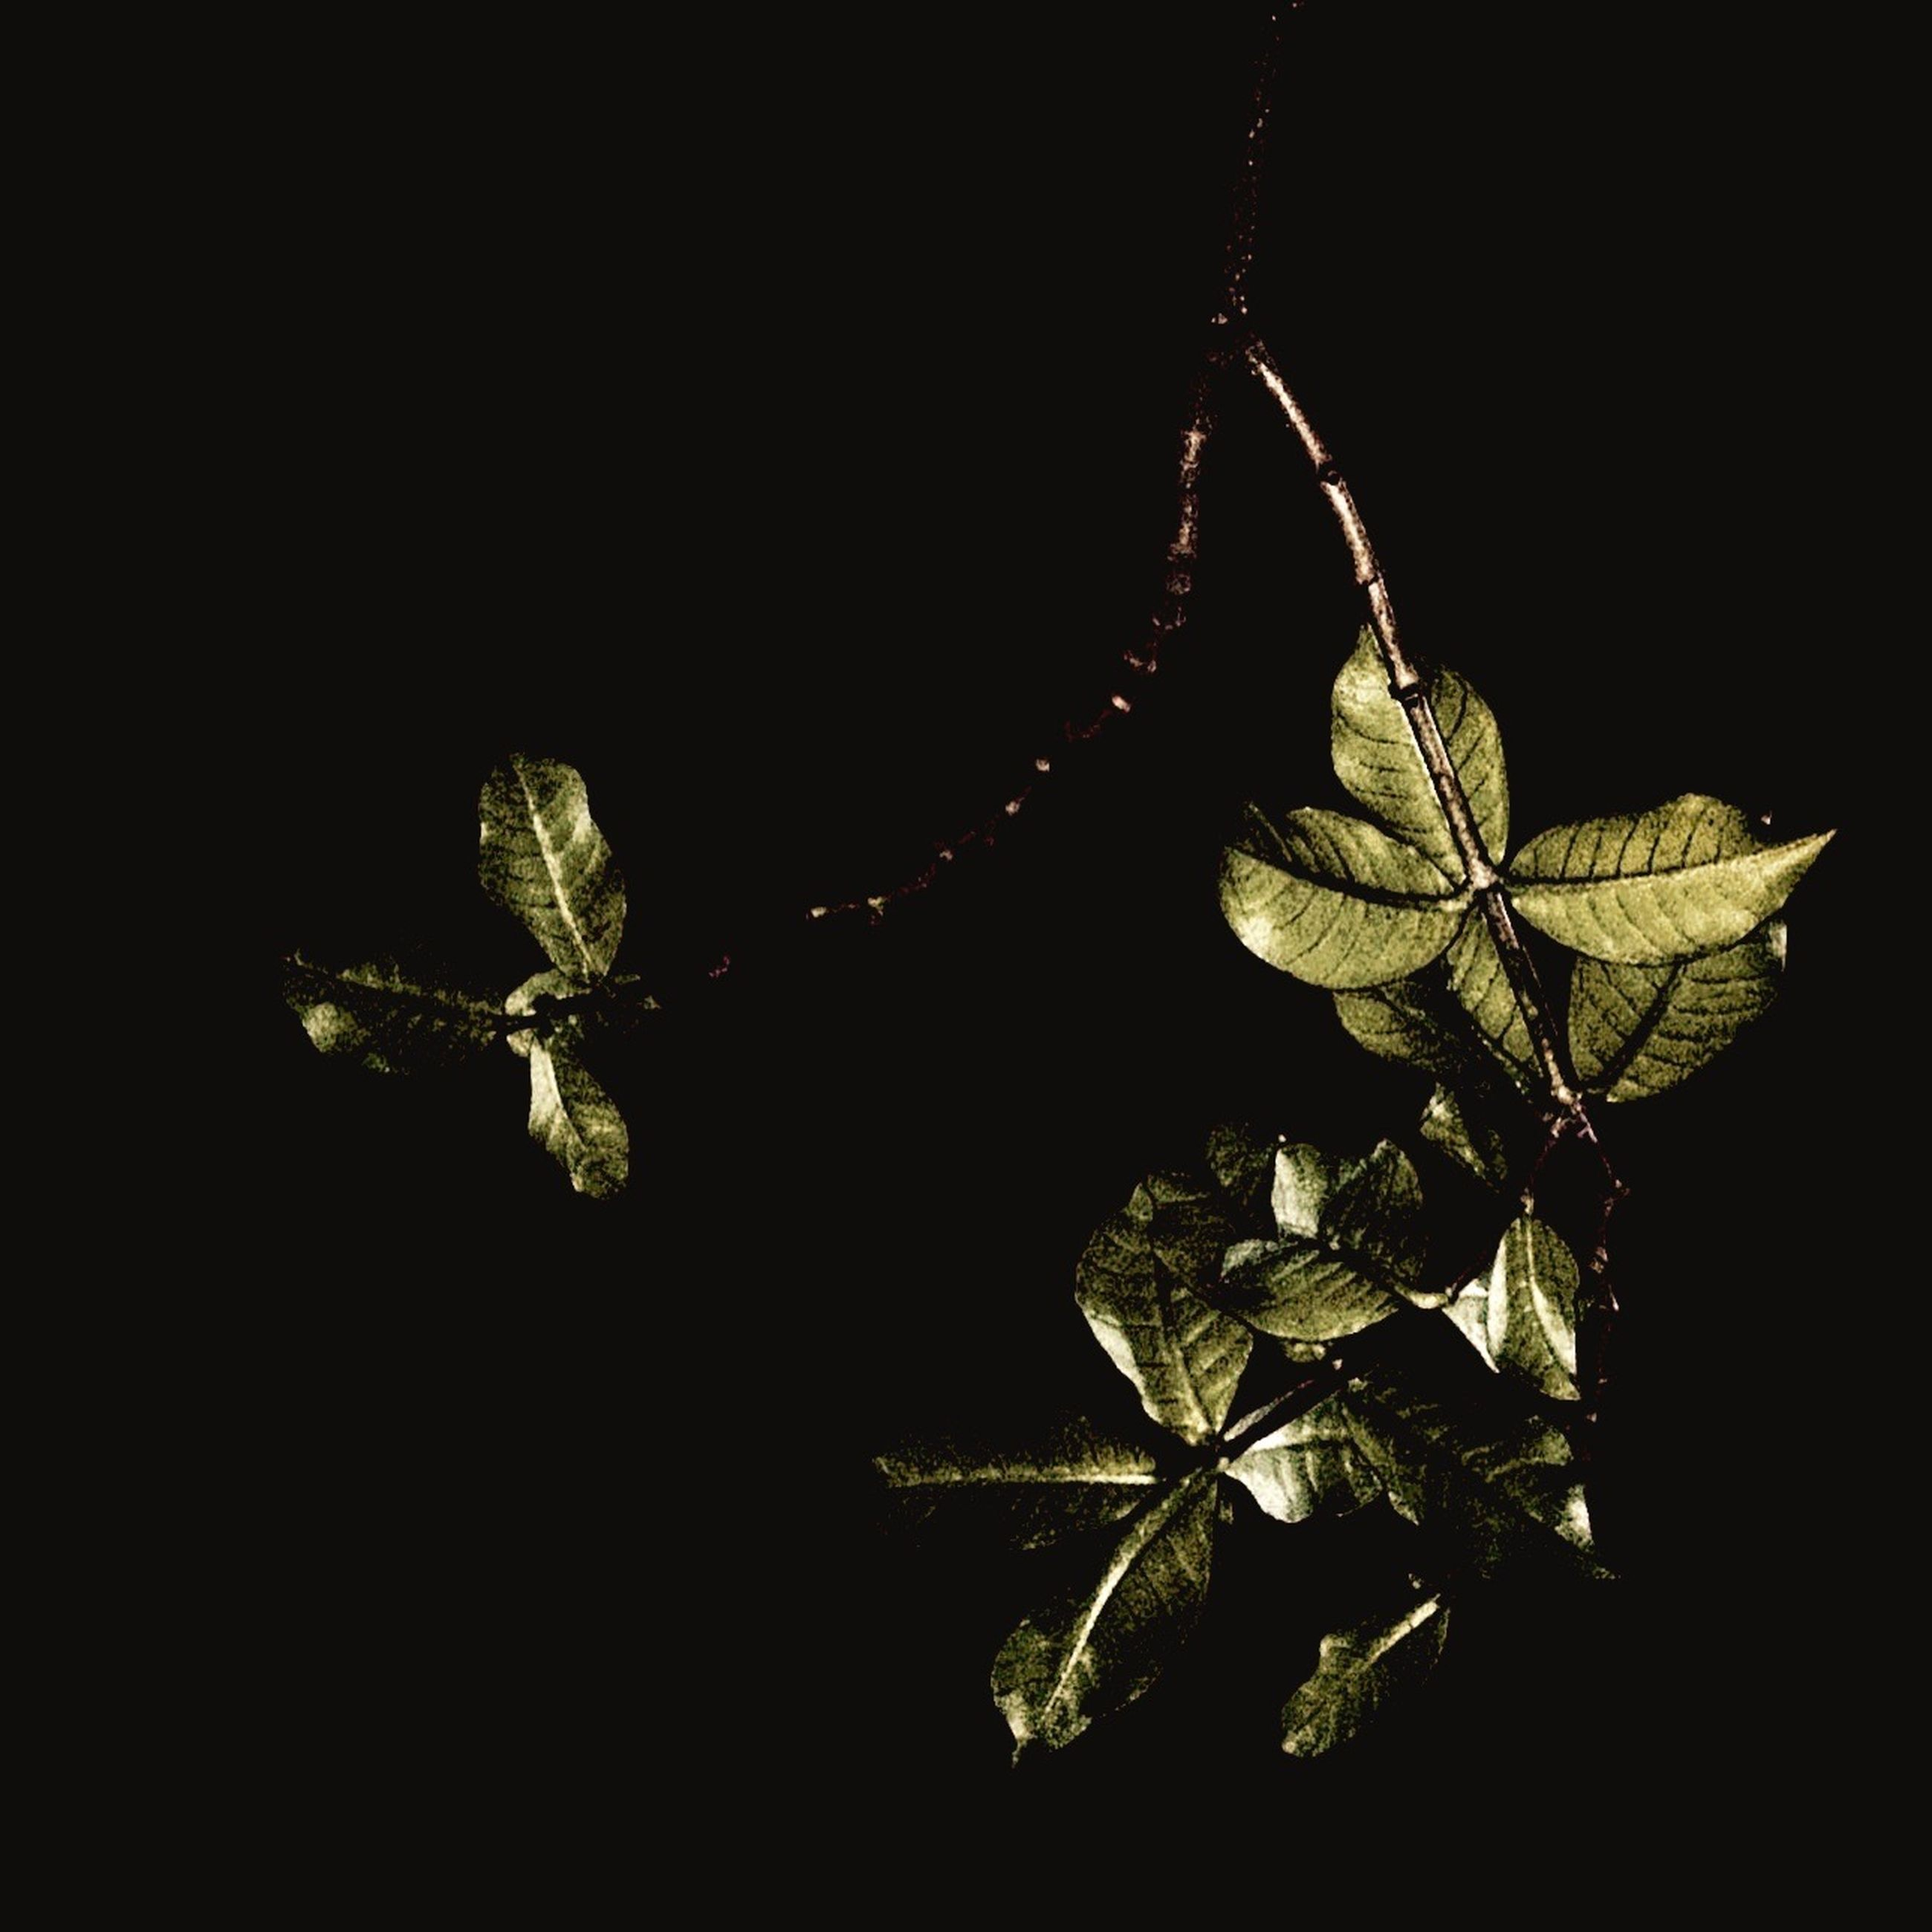 night, growth, leaf, plant, branch, nature, low angle view, copy space, clear sky, tree, close-up, black background, beauty in nature, dark, outdoors, no people, stem, studio shot, twig, tranquility